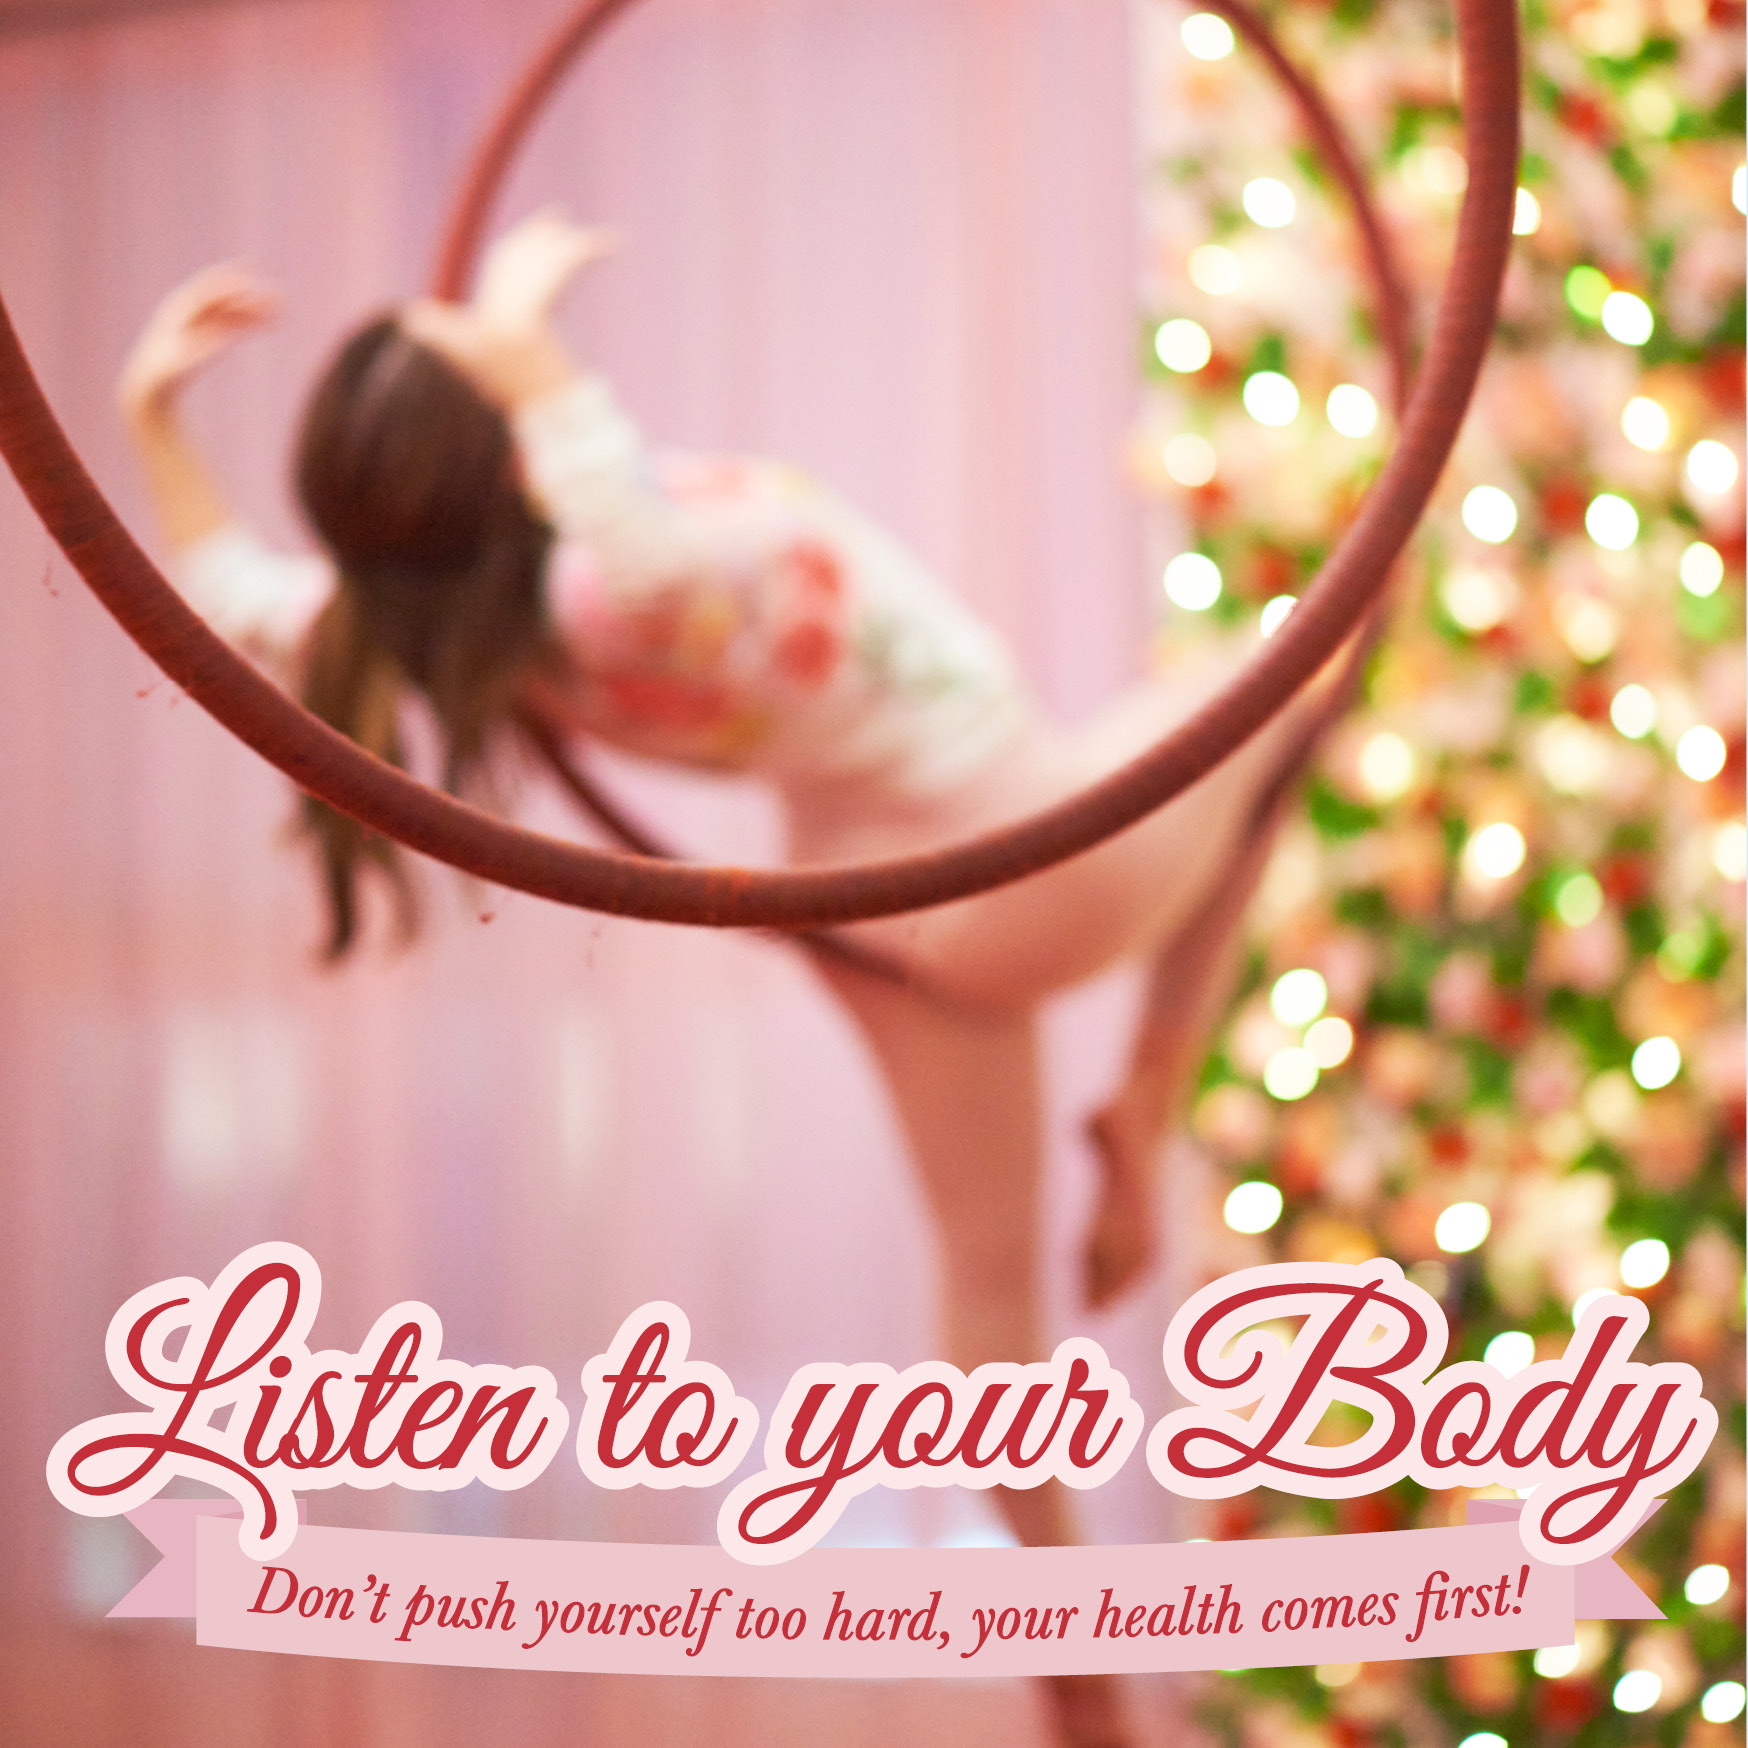 listen-to-your-body.jpg